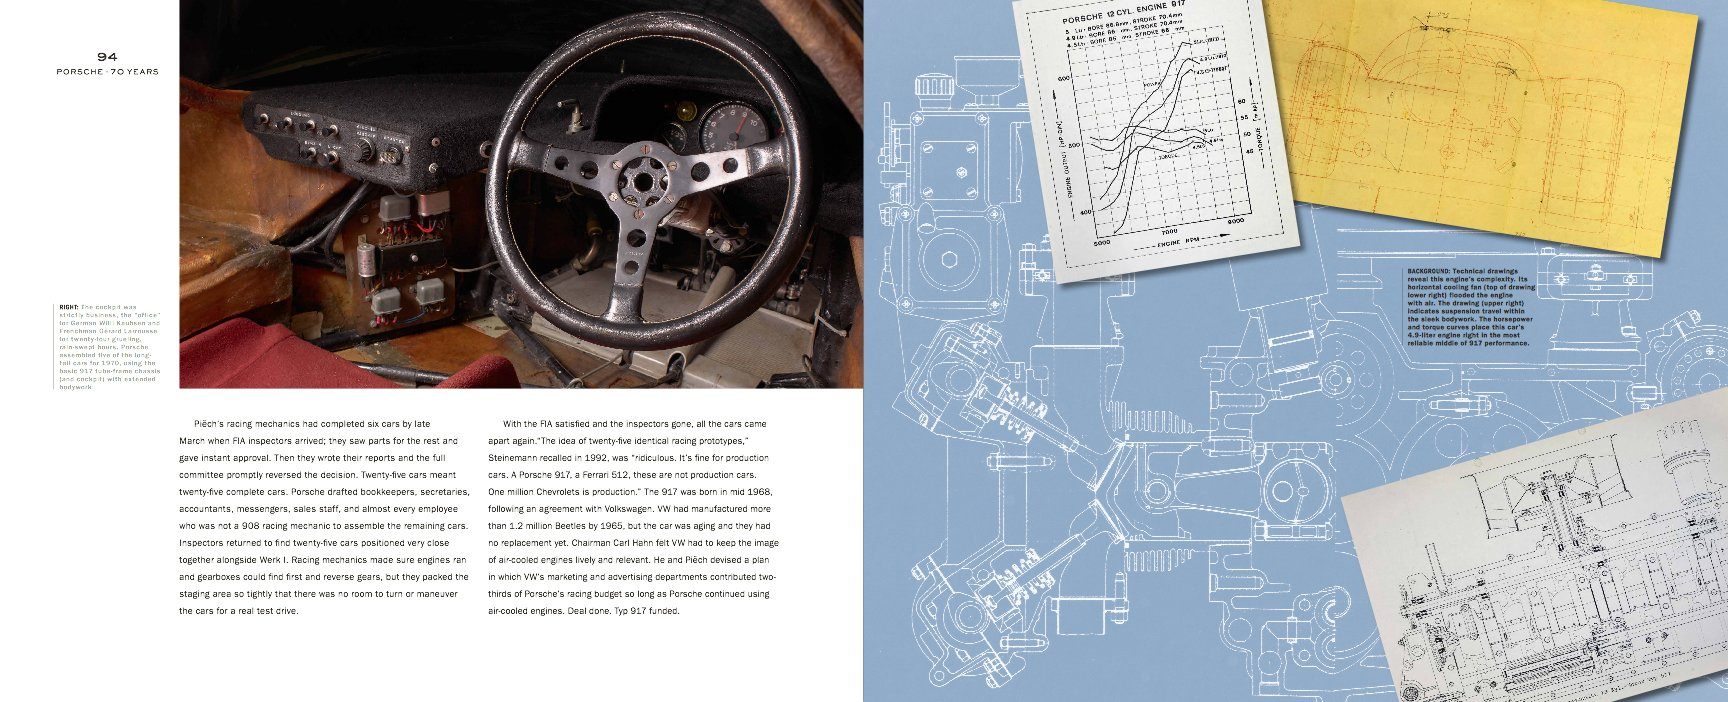 Porsche 70 Years There Is No Substitute Randy Leffingwell Engine Cooling Diagram 9780760347256 Books